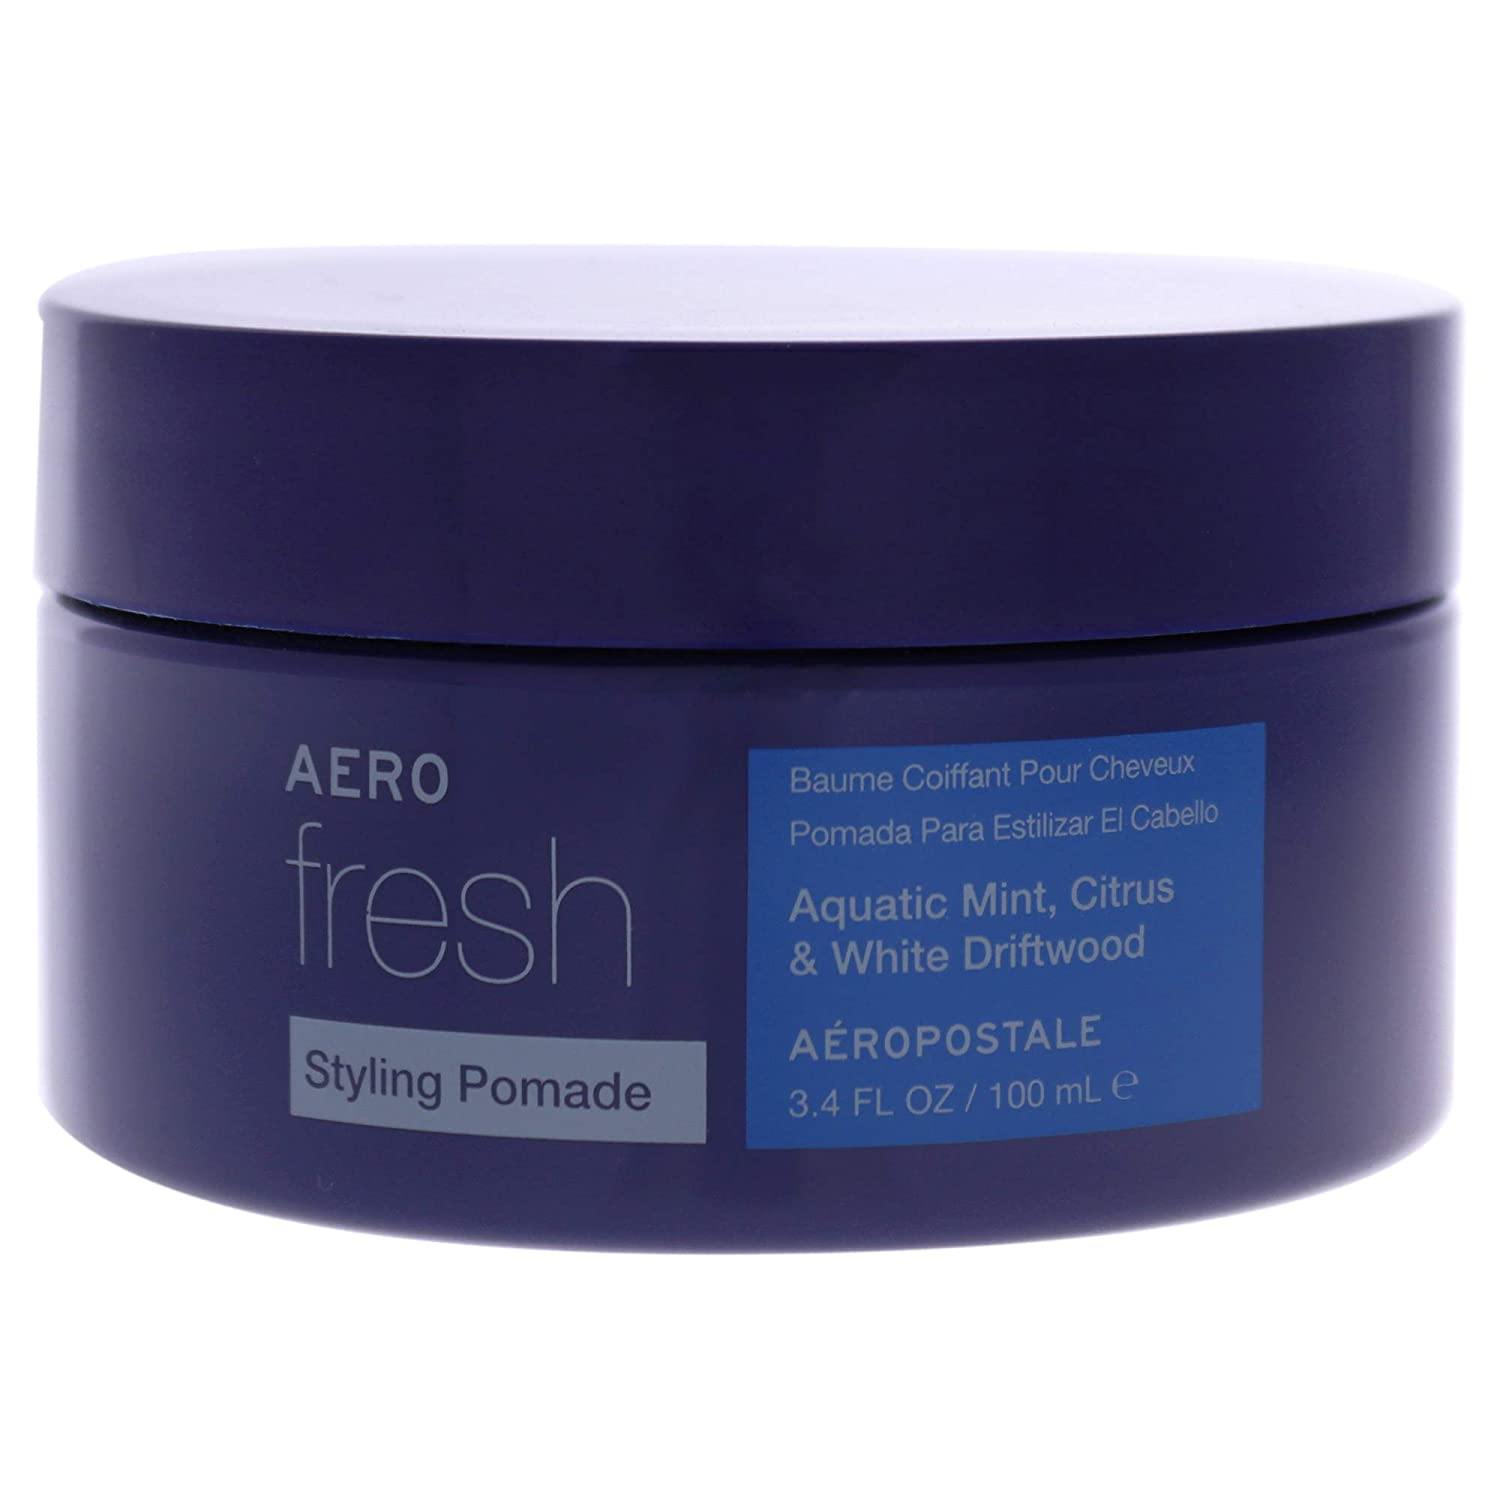 Aero Max 48% OFF Fresh Over item handling ☆ Styling Pomade by Aeropostale 3.4 oz - Men for